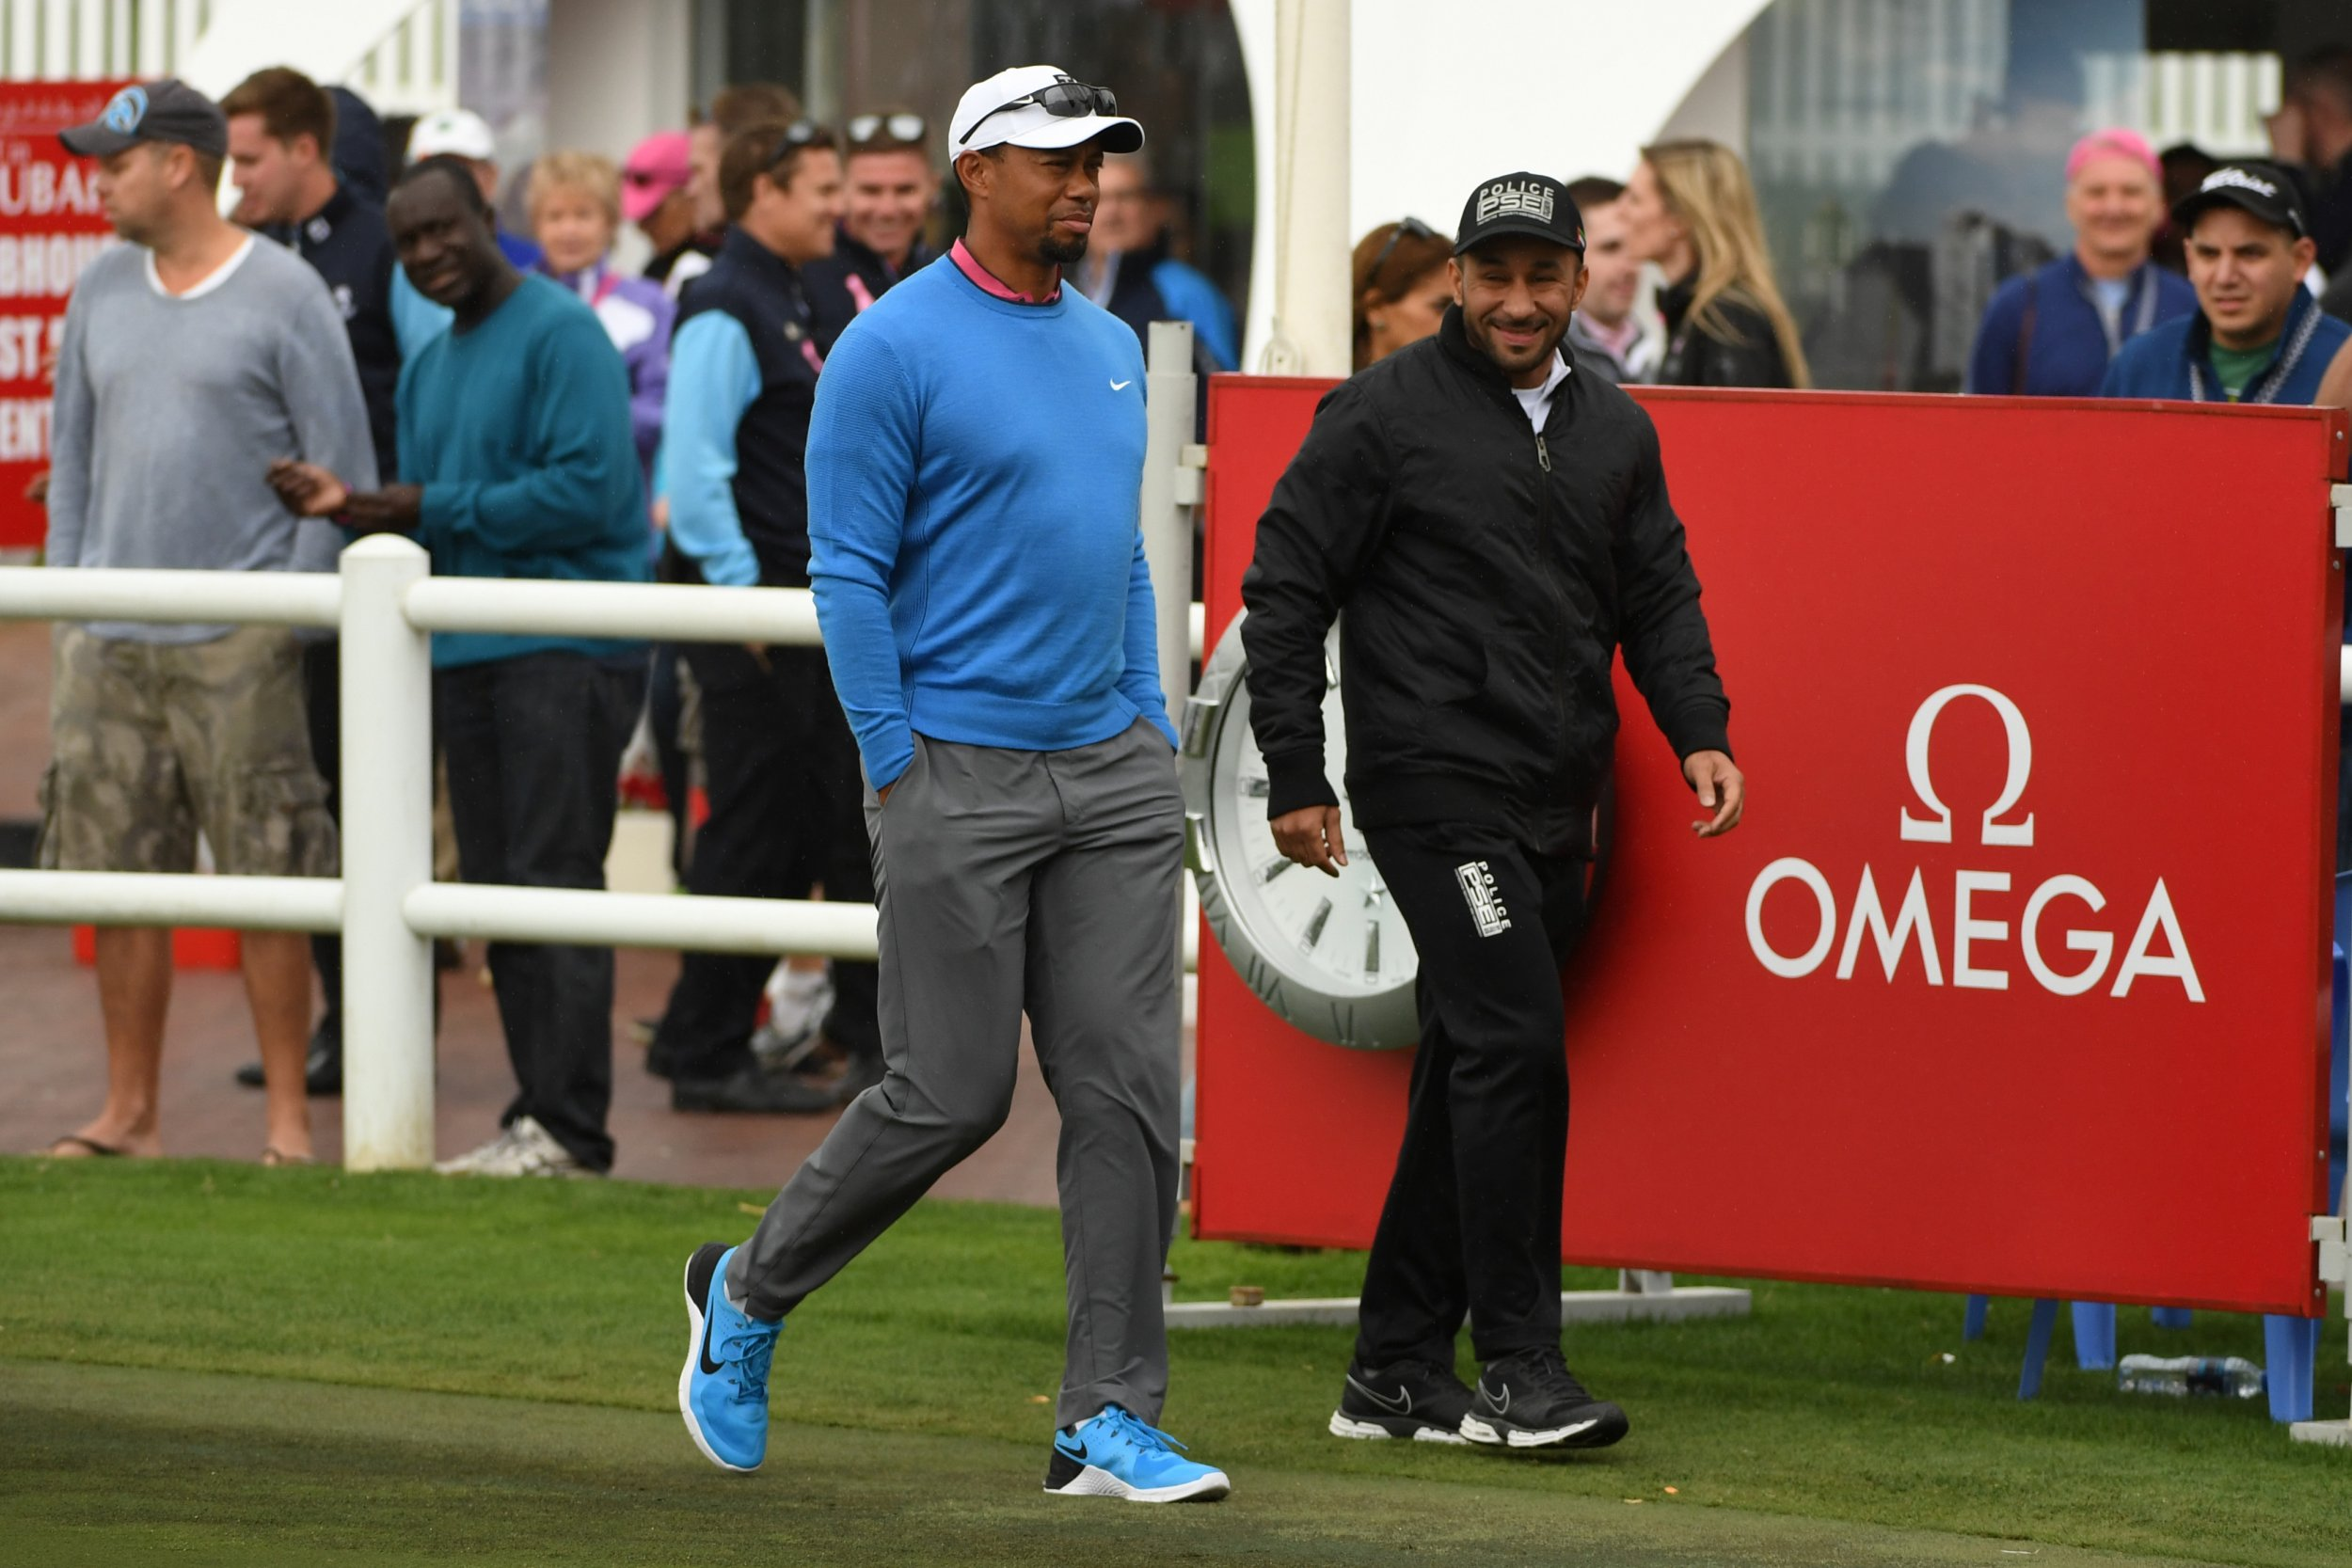 Tiger Woods of the United States makes his way to the clubhouse during the second round of the Omega Dubai Desert Classic at Emirates Golf Club on February 3, 2017 in Dubai, United Arab Emirates.